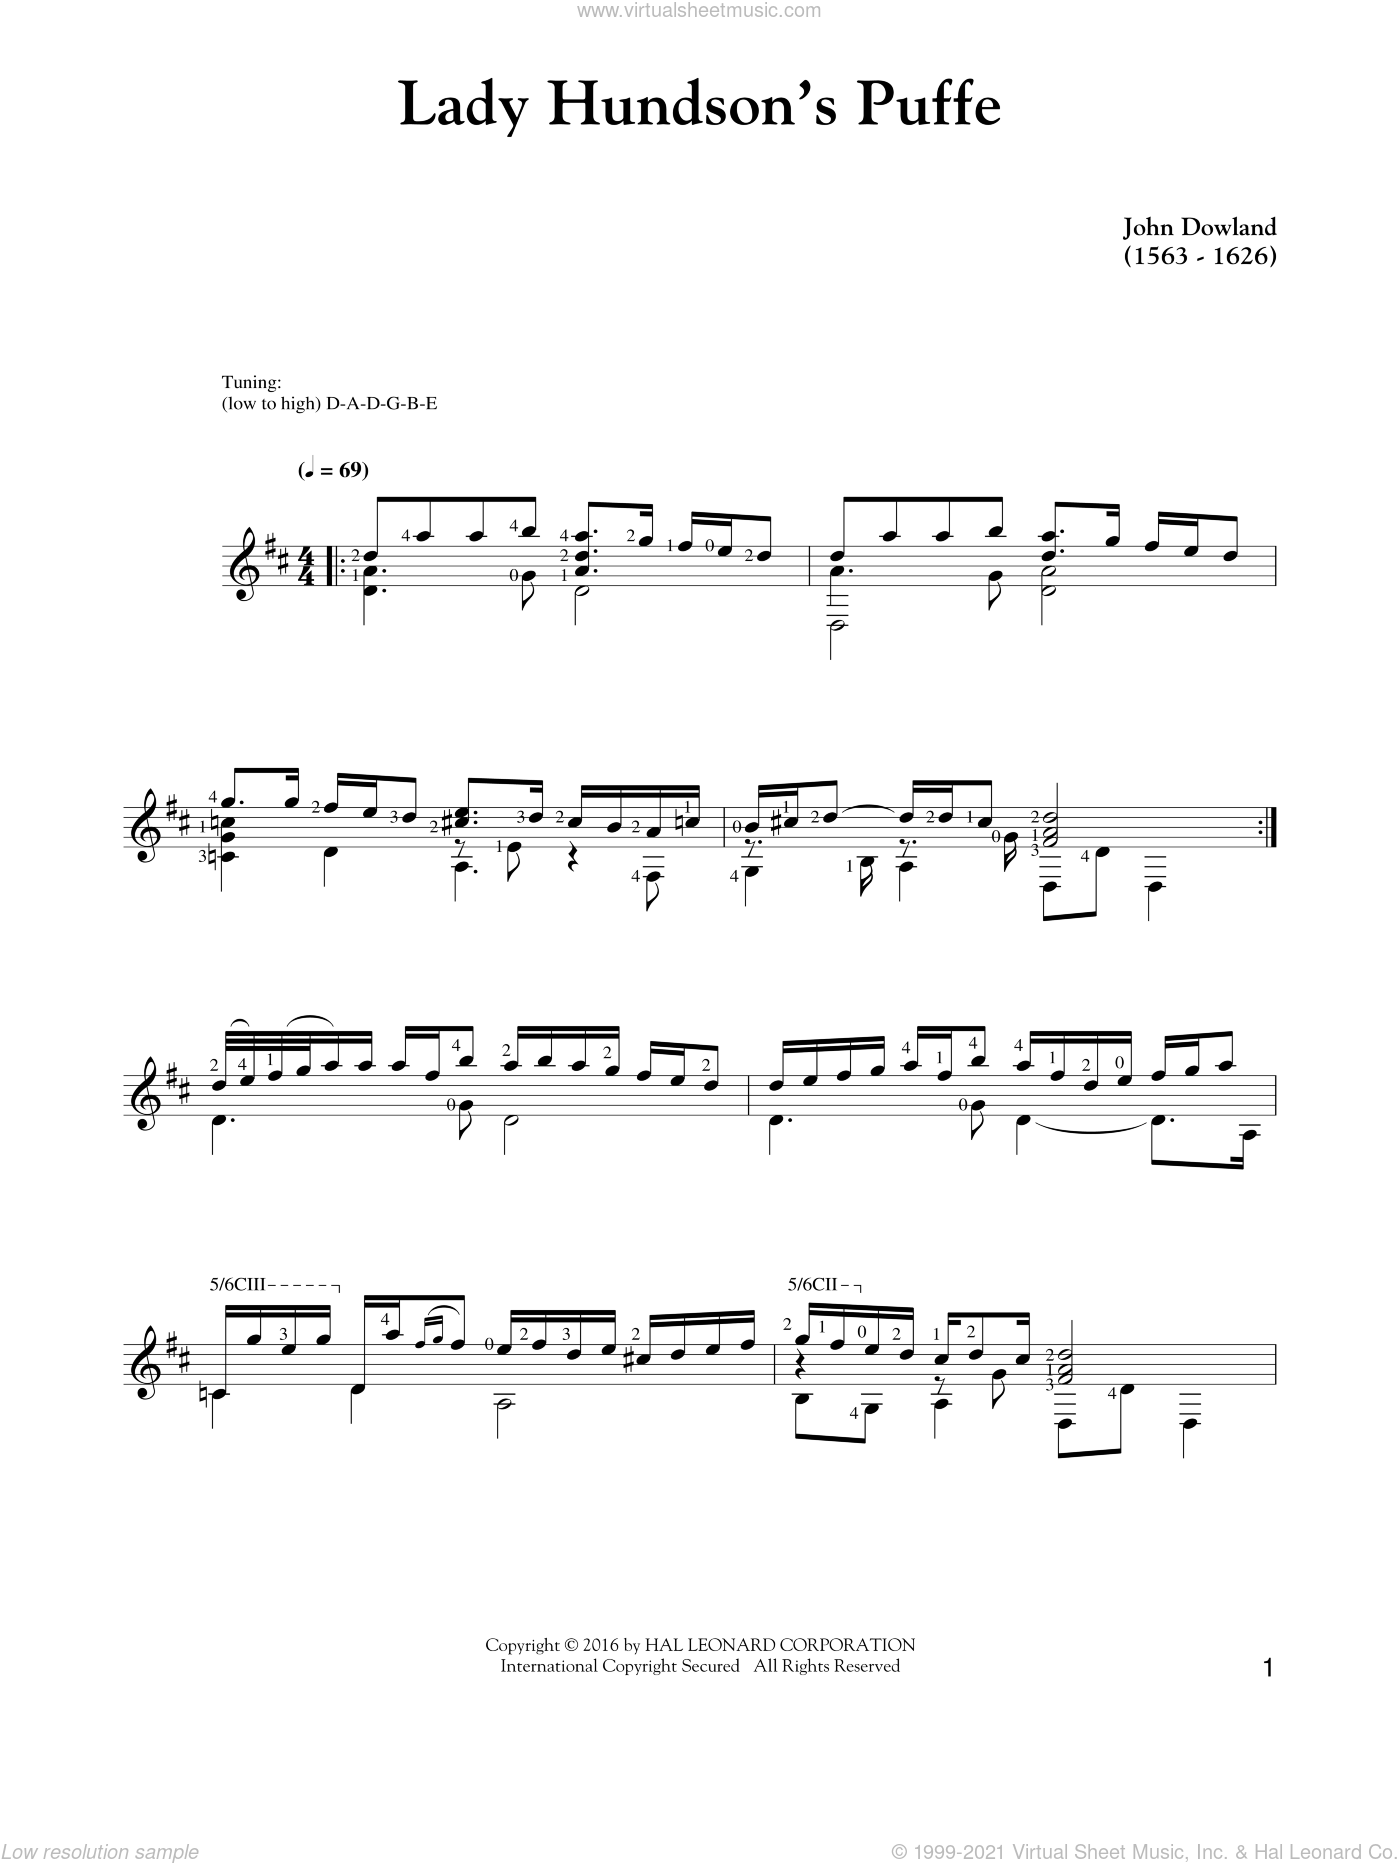 Lady Hunsdon's Puffe sheet music for guitar solo by John Dowland. Score Image Preview.